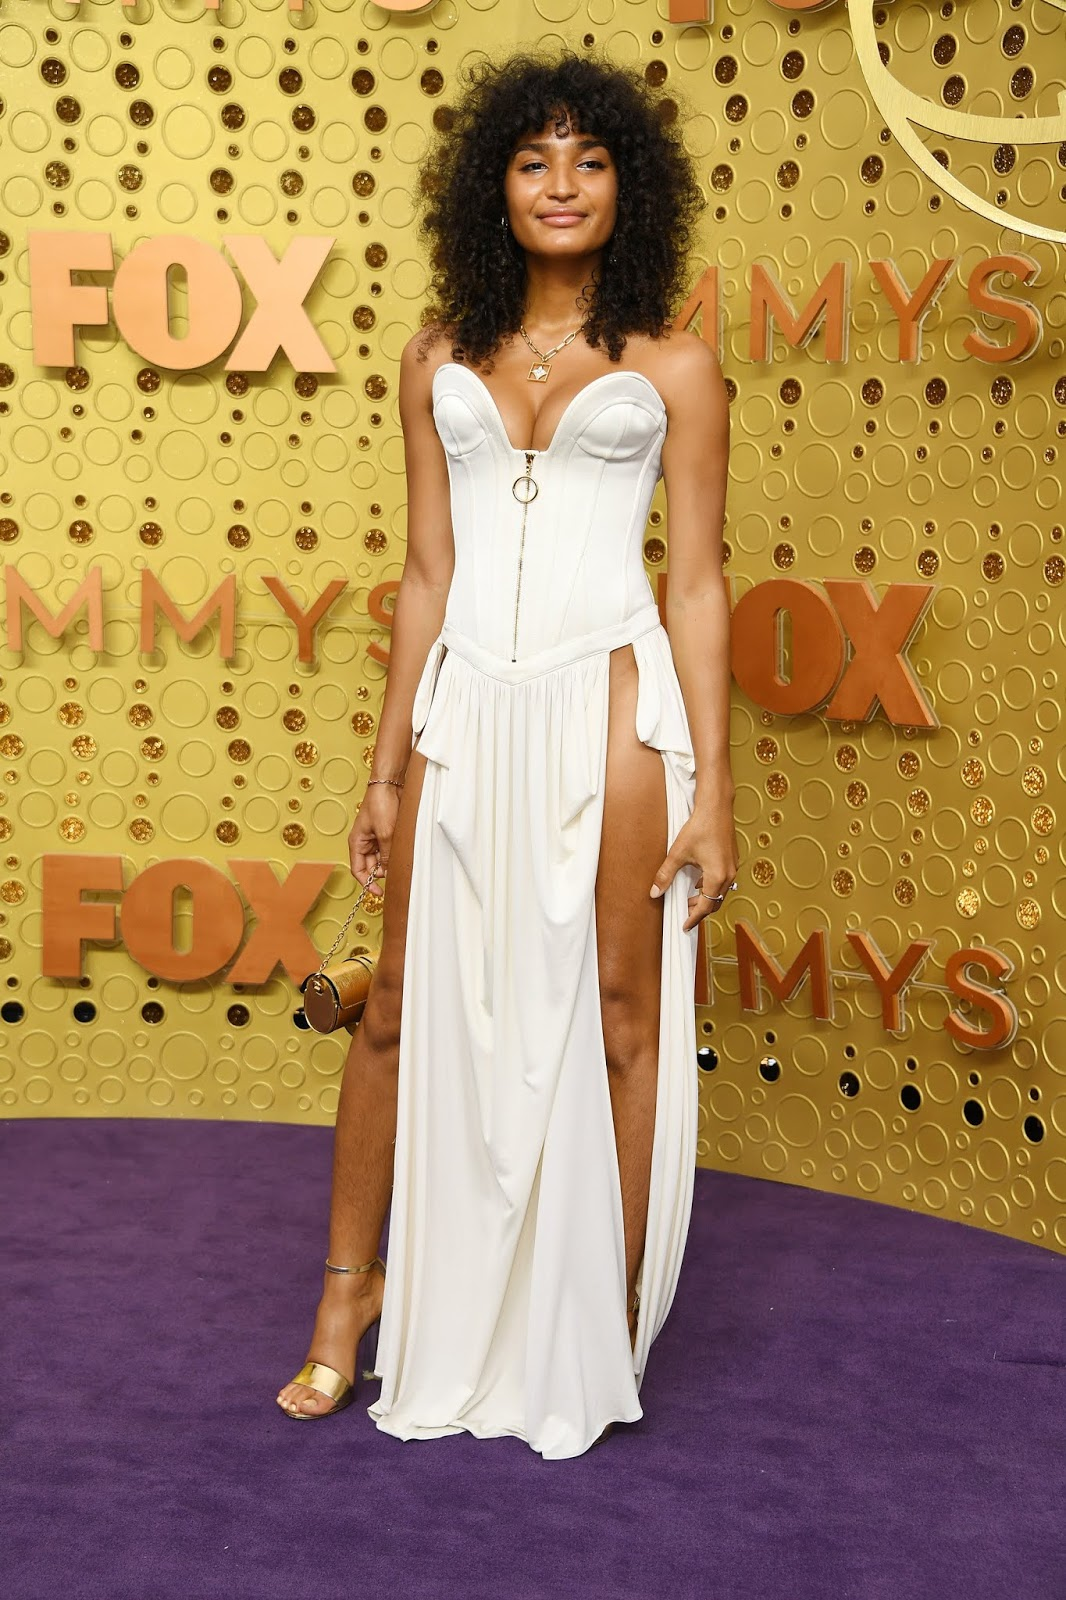 Actress Indya Moore shocked fans with her revealing dress on the Emmys red carpet